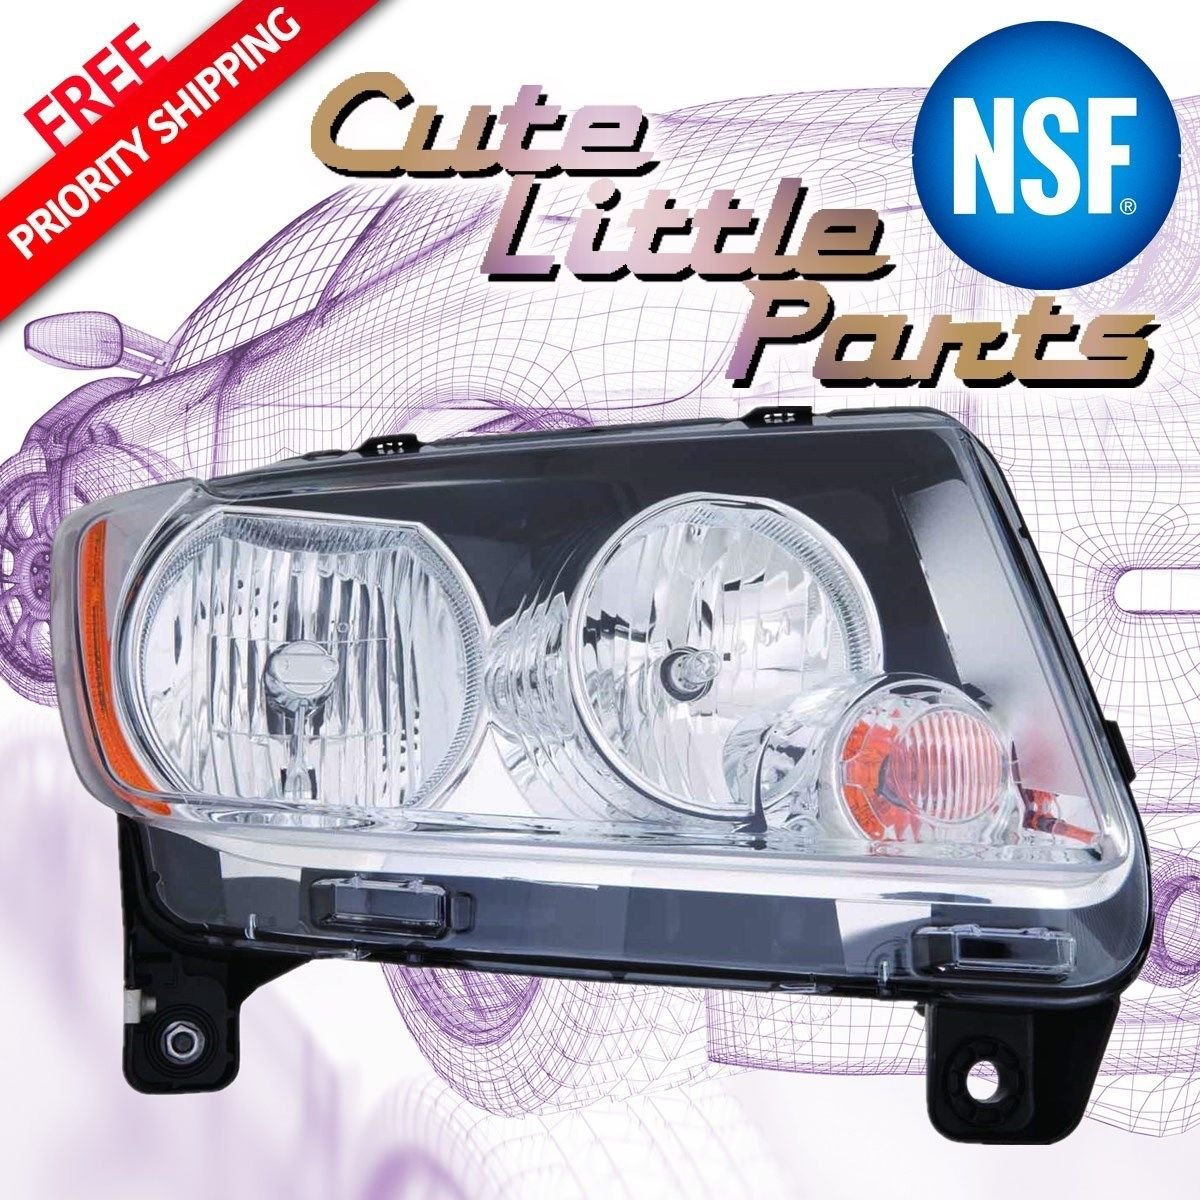 JEEP COMPASS 11-13 CODE LMB PASSENGER SIDE NSF Depo 333-1190R-AFN Headlight Assembly